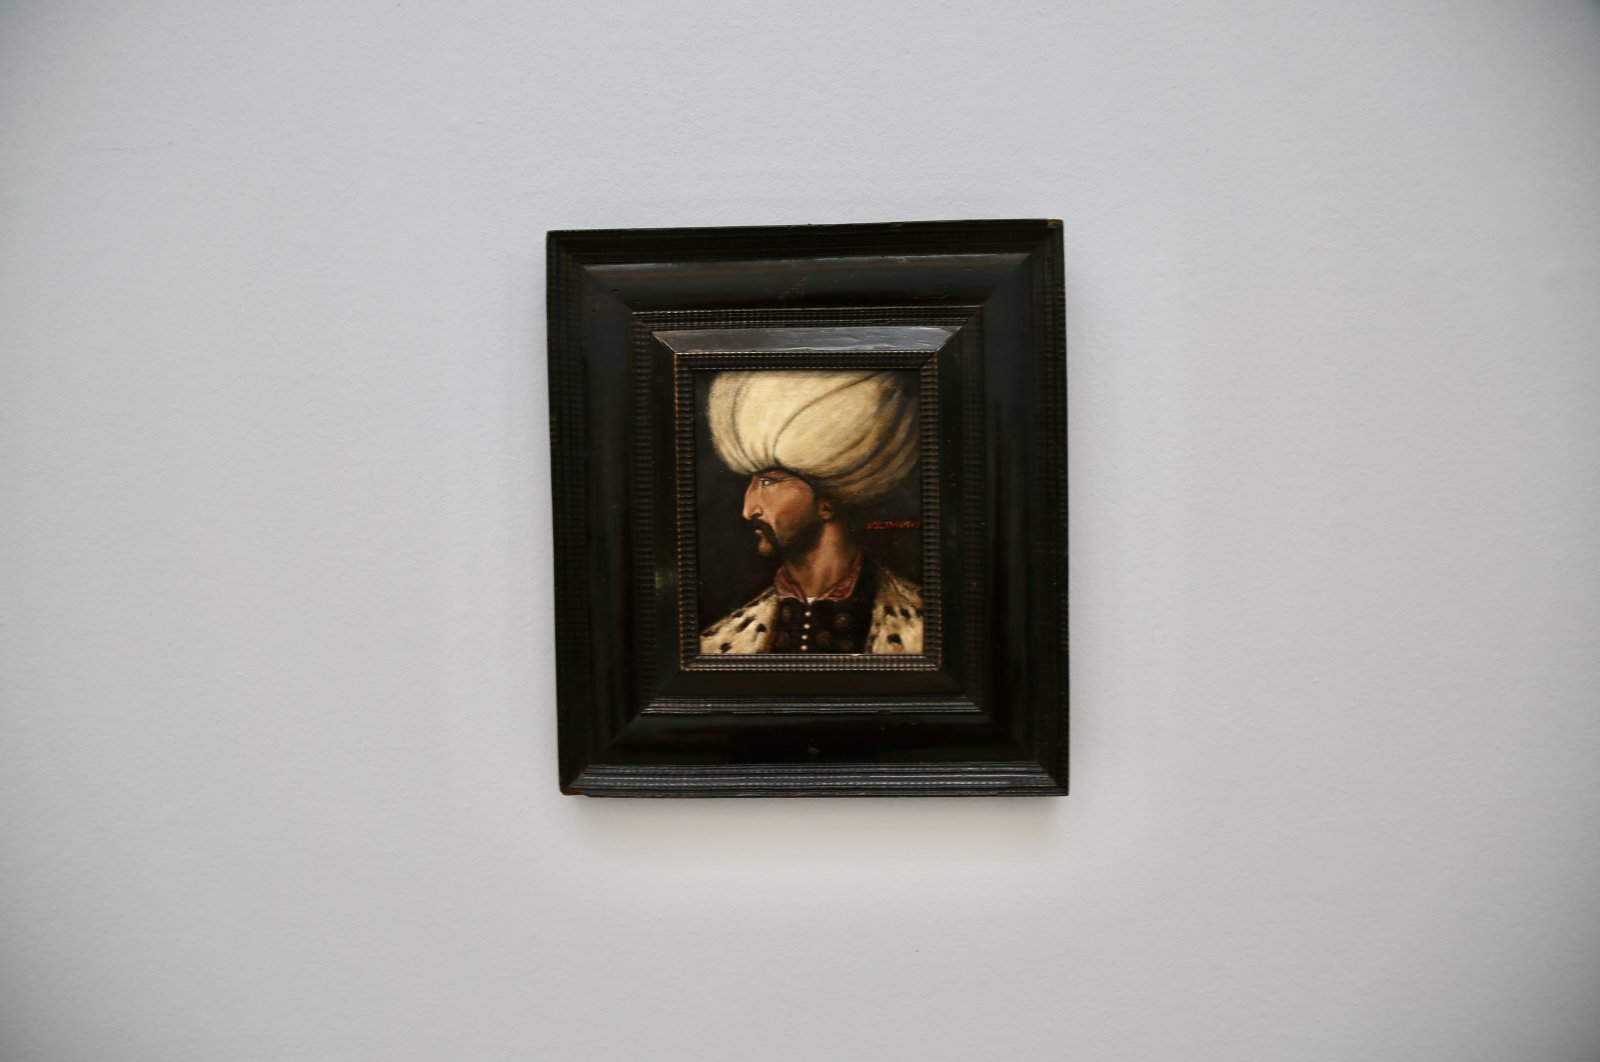 The portrait of Ottoman Sultan Suleiman I on display at Sotheby's, London, U.K., March 31, 2021. (AA Photo)